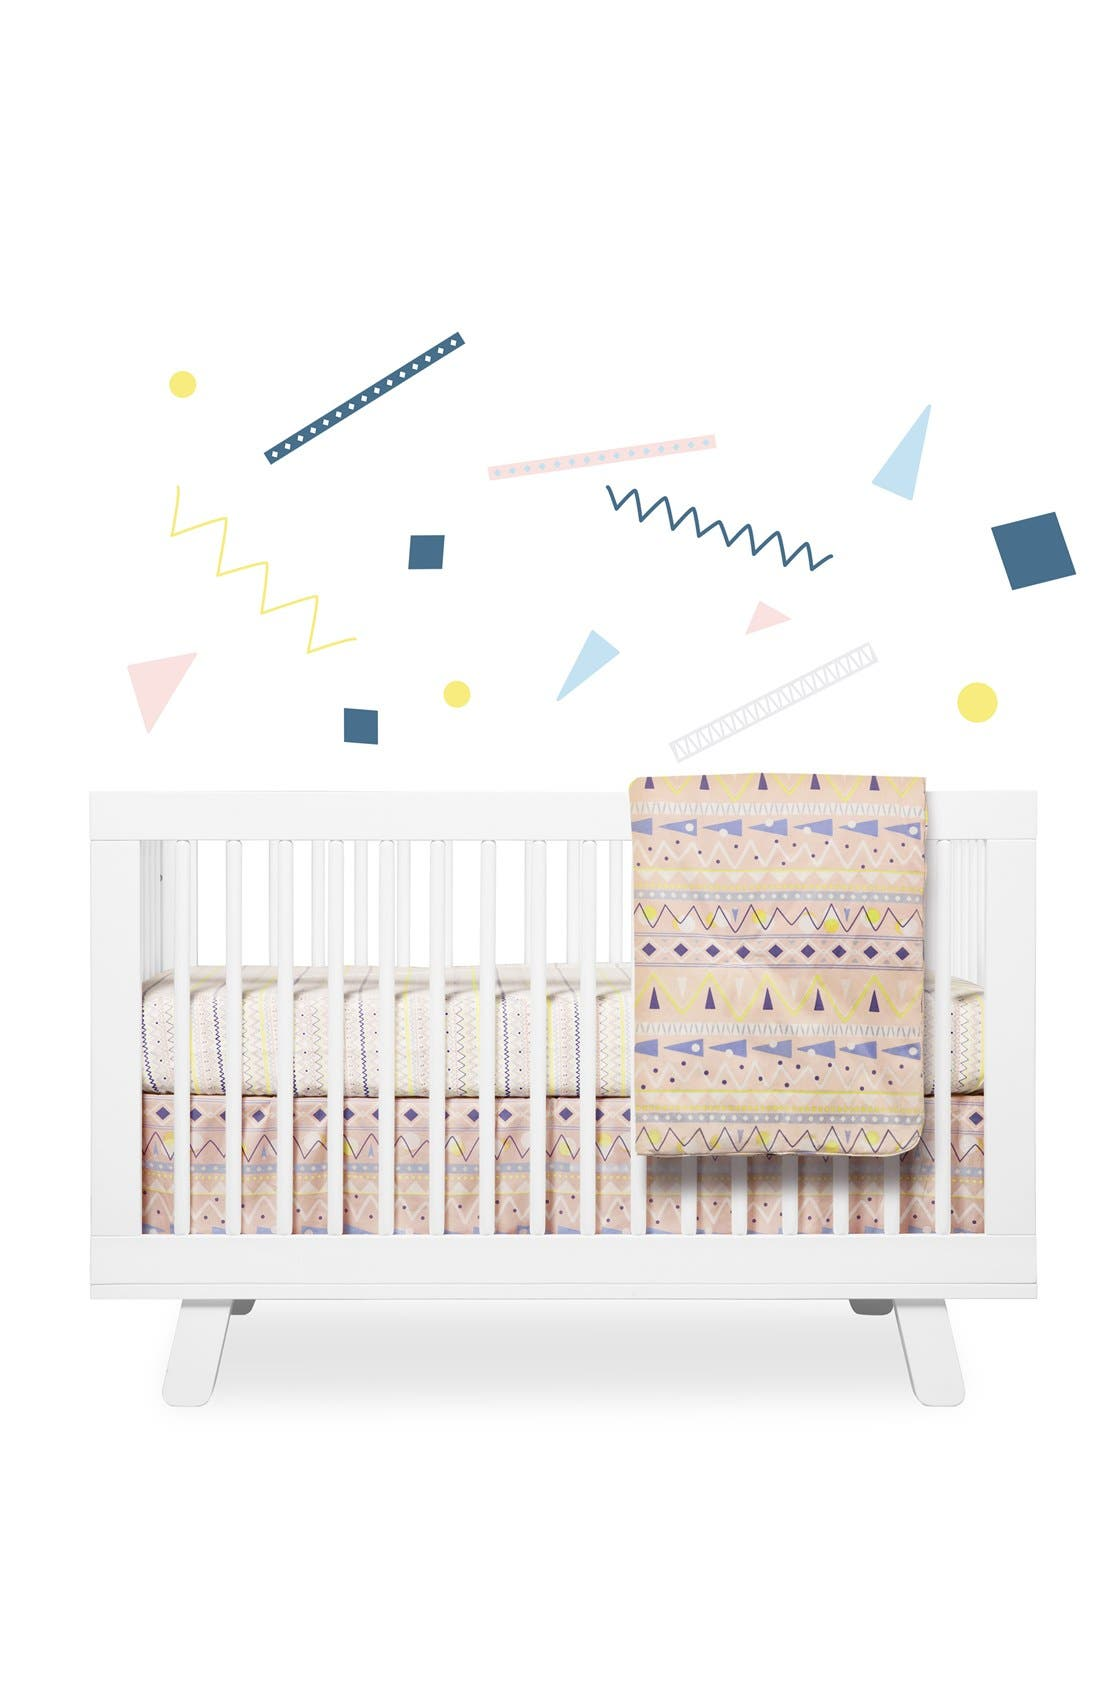 babyletto 'Desert' Crib Sheet, Crib Skirt, Stroller Blanket & Wall Decals